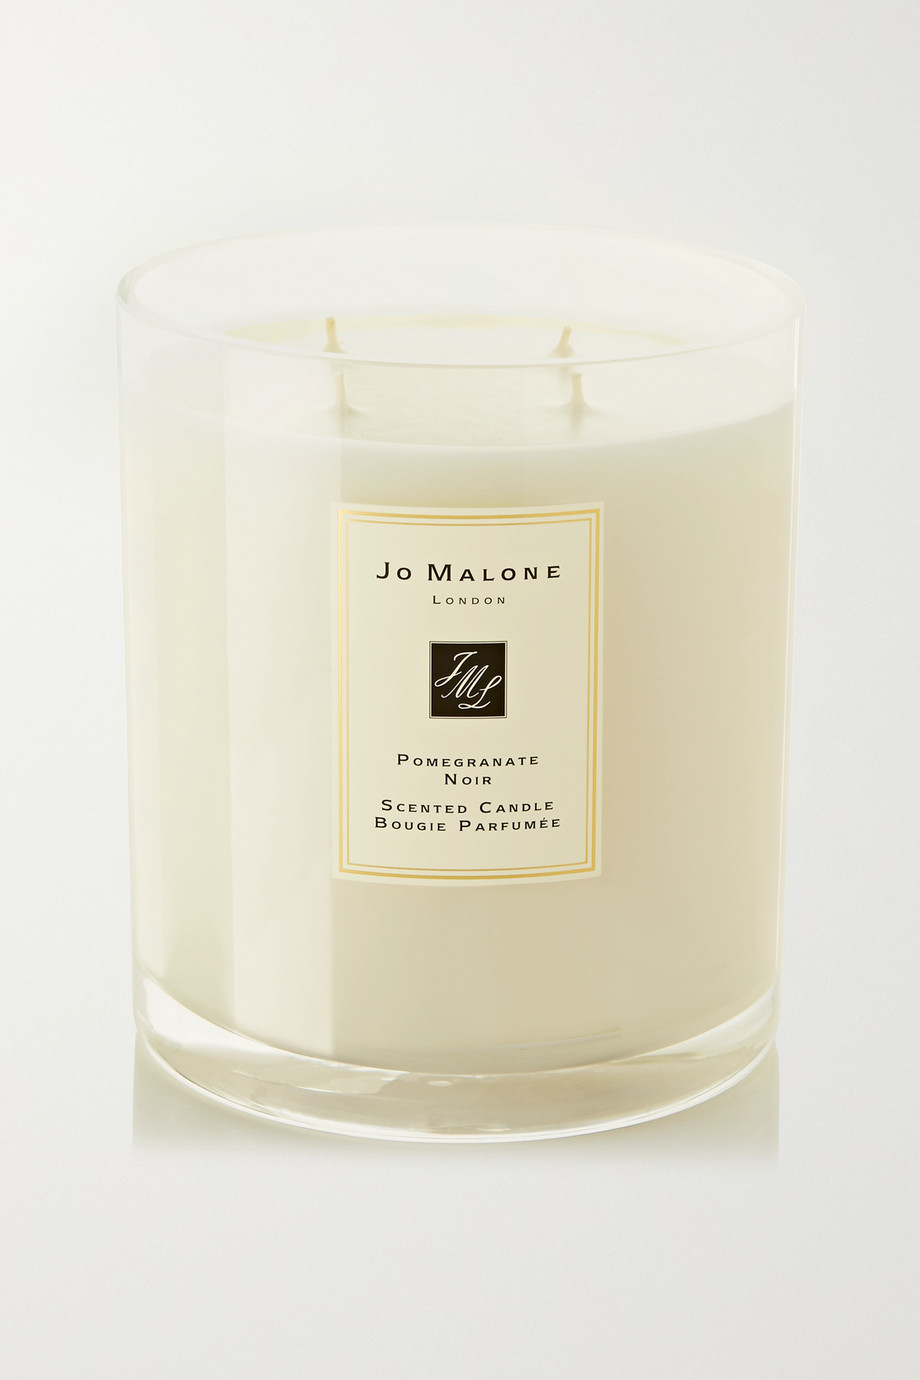 Jo Malone London Pomegranate Noir Scented Luxury Candle, 2500g